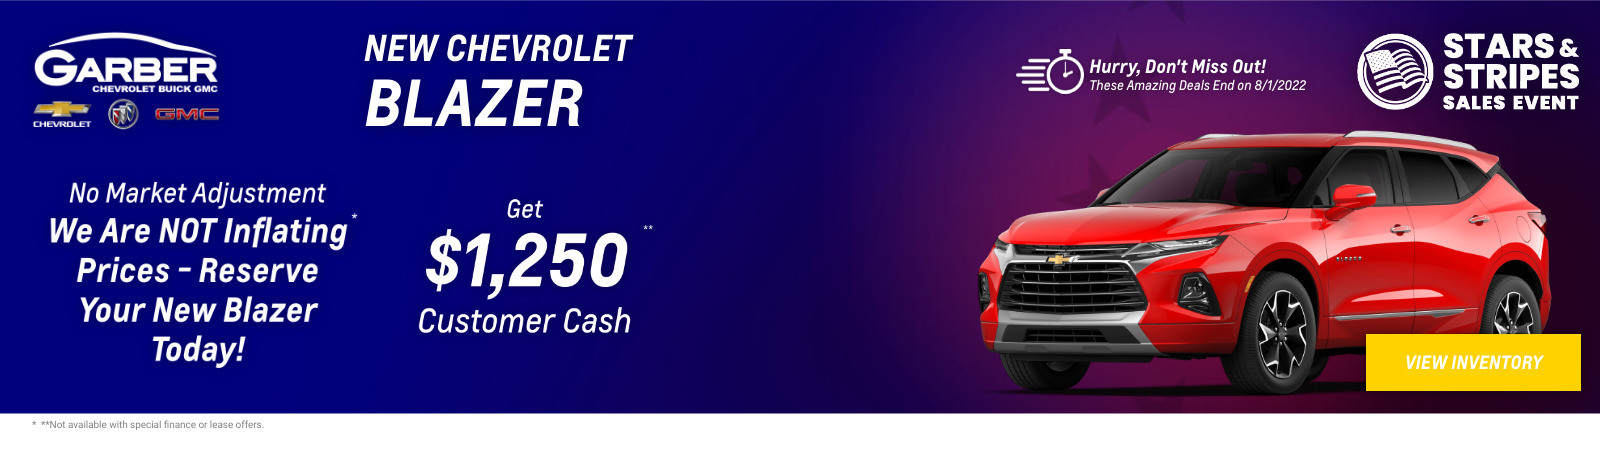 New Chevrolet Blazer Current Deals and Offers in Green Cove Springs, FL